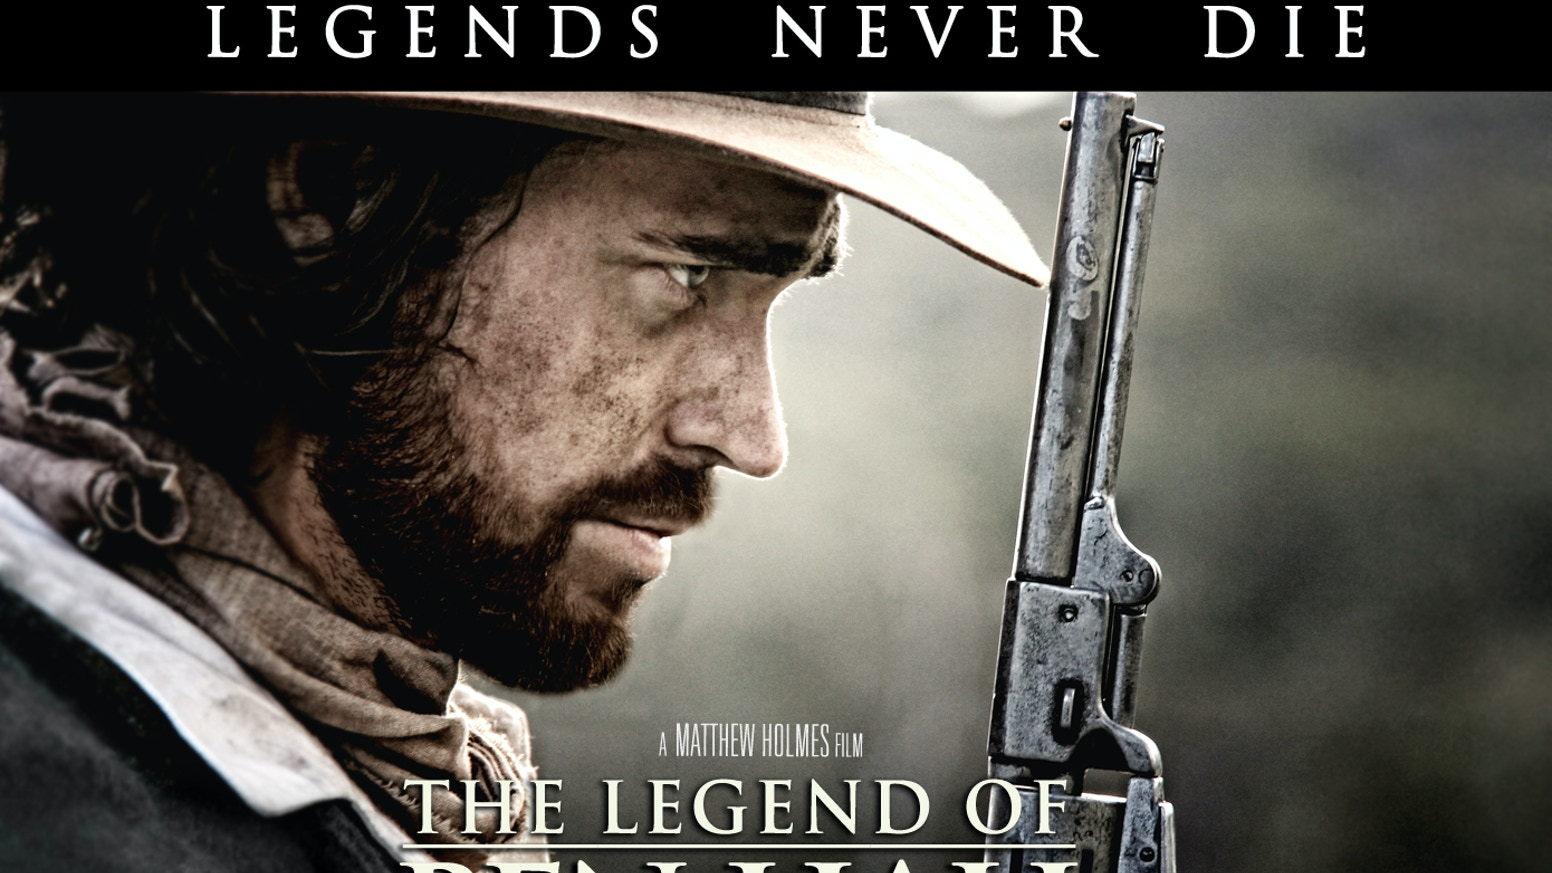 An Emotionally Charged Action Packed 40 Minute Film About The Last Days Of Infamous Australian Bushranger And Outlaw Ben Hall